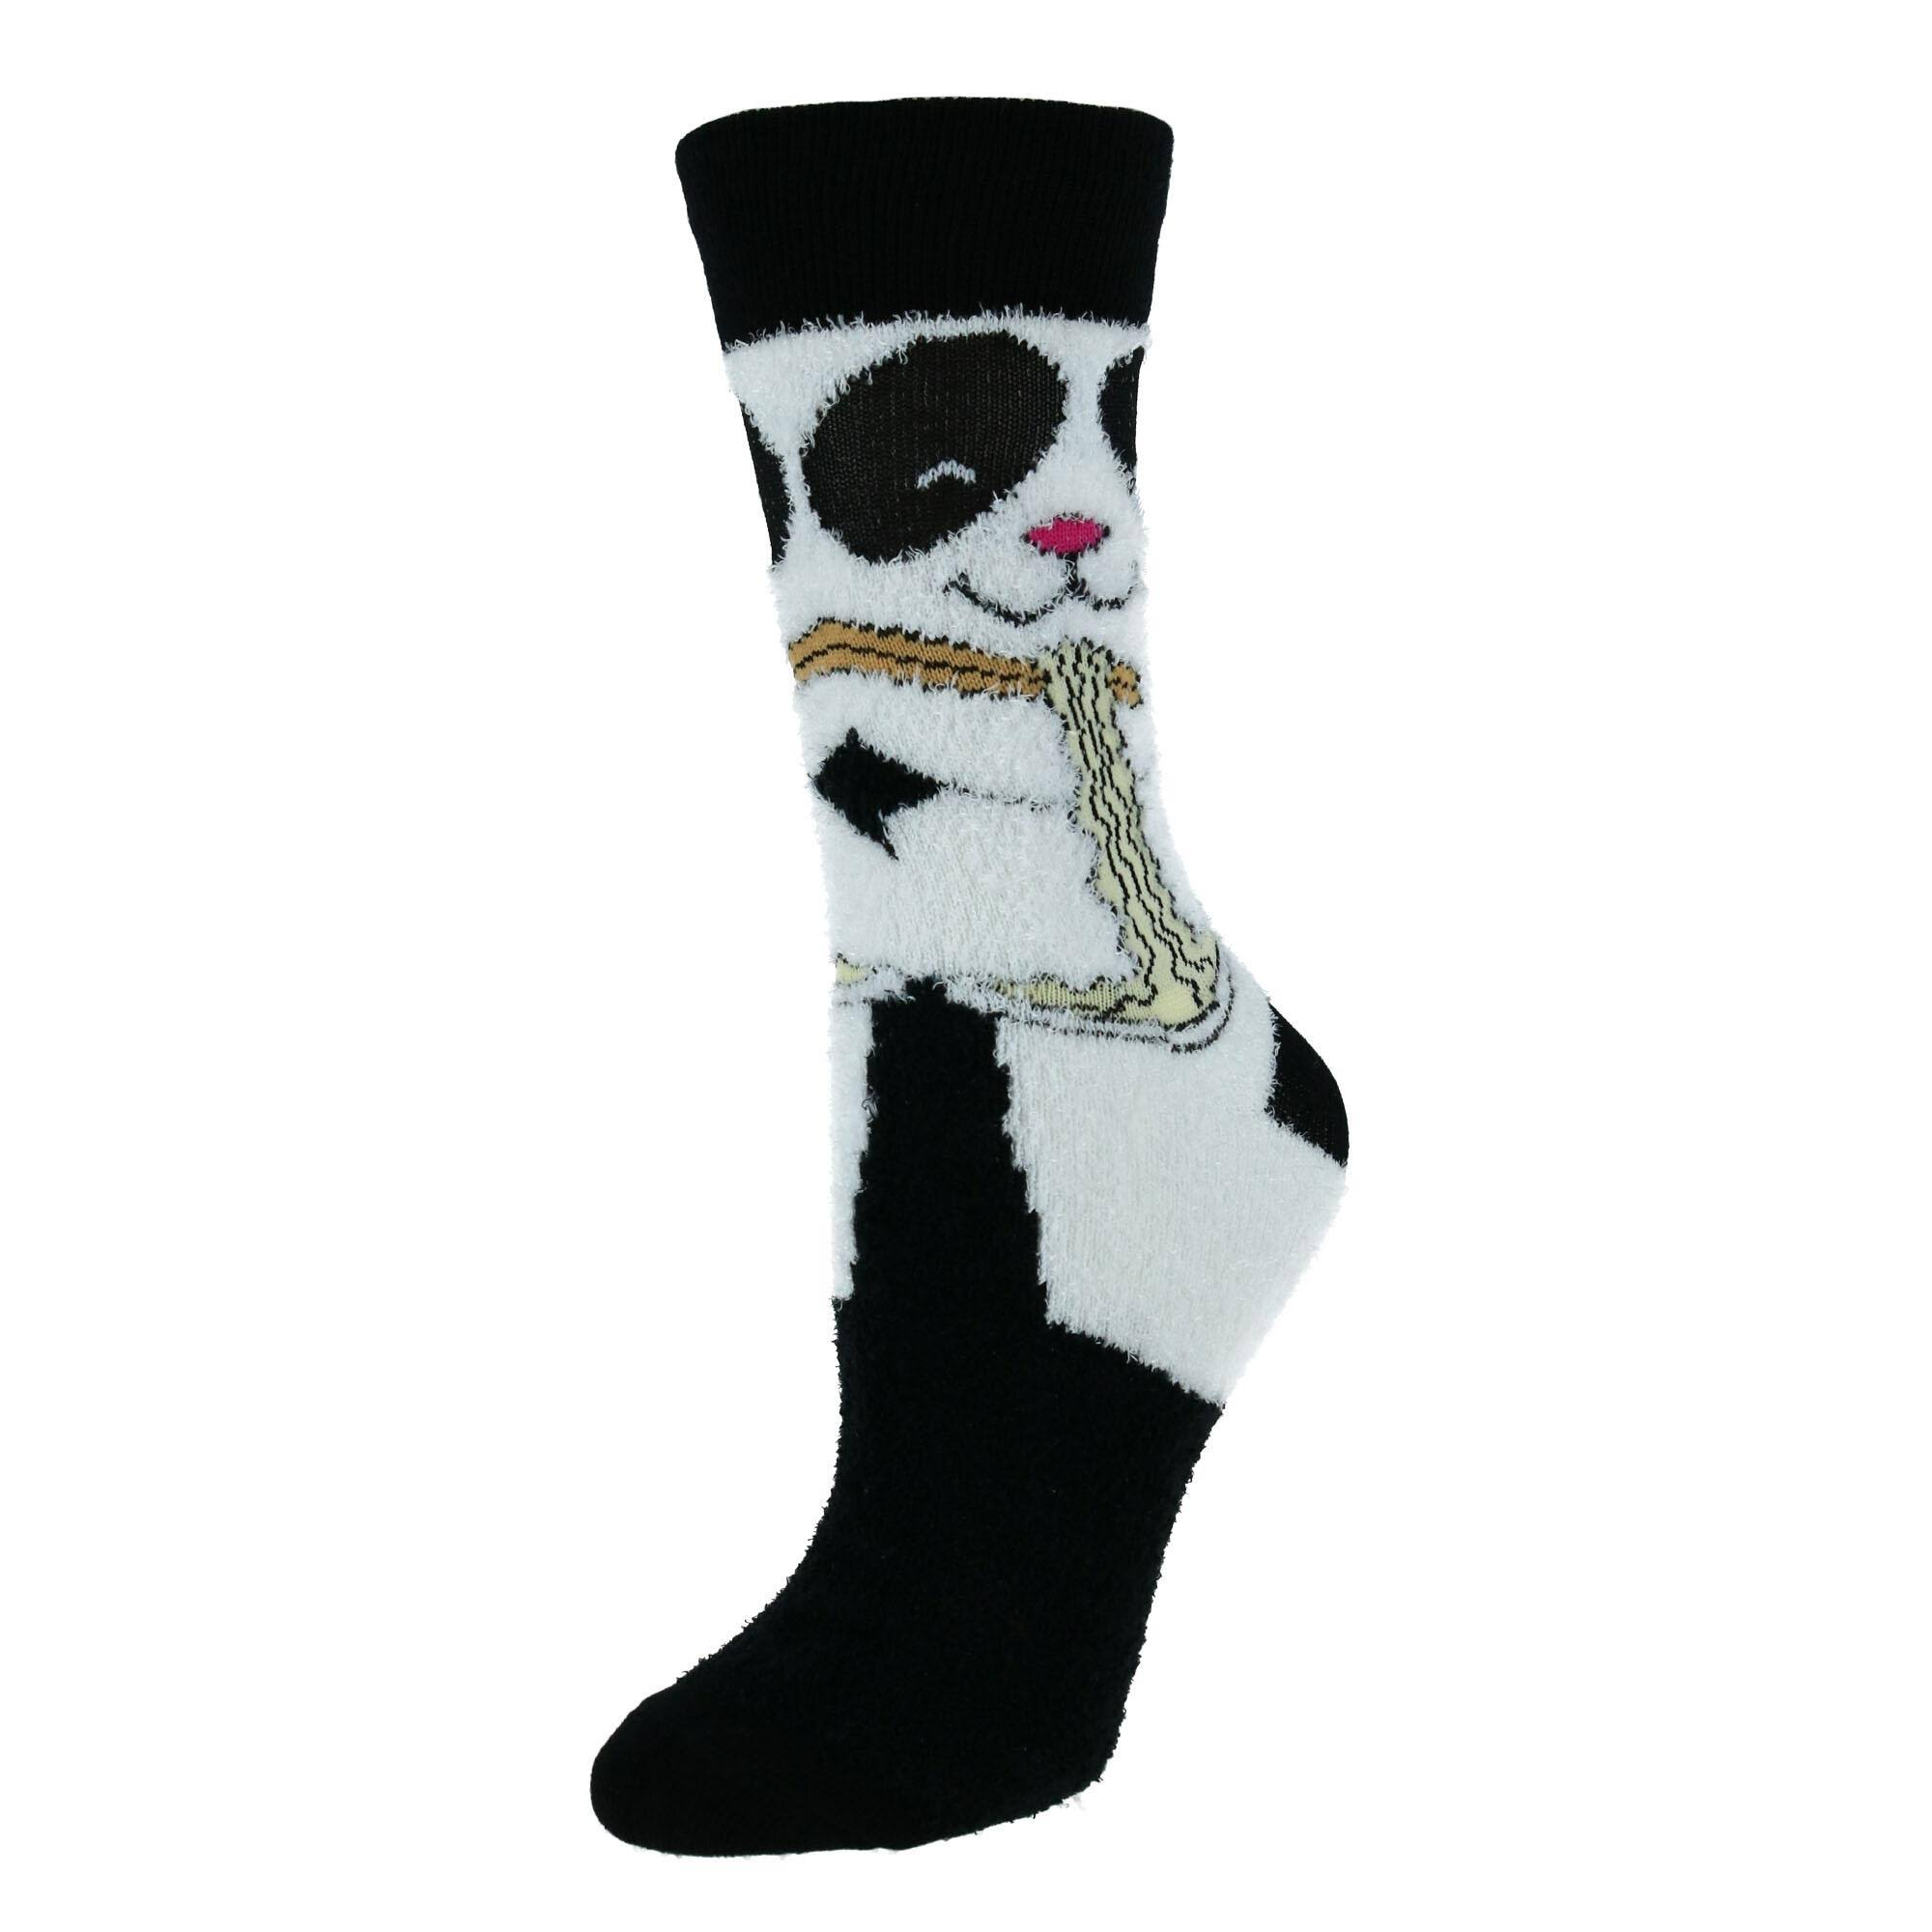 Two Left Feet Women's Super Soft Fuzzy Crew Socks - Black Small